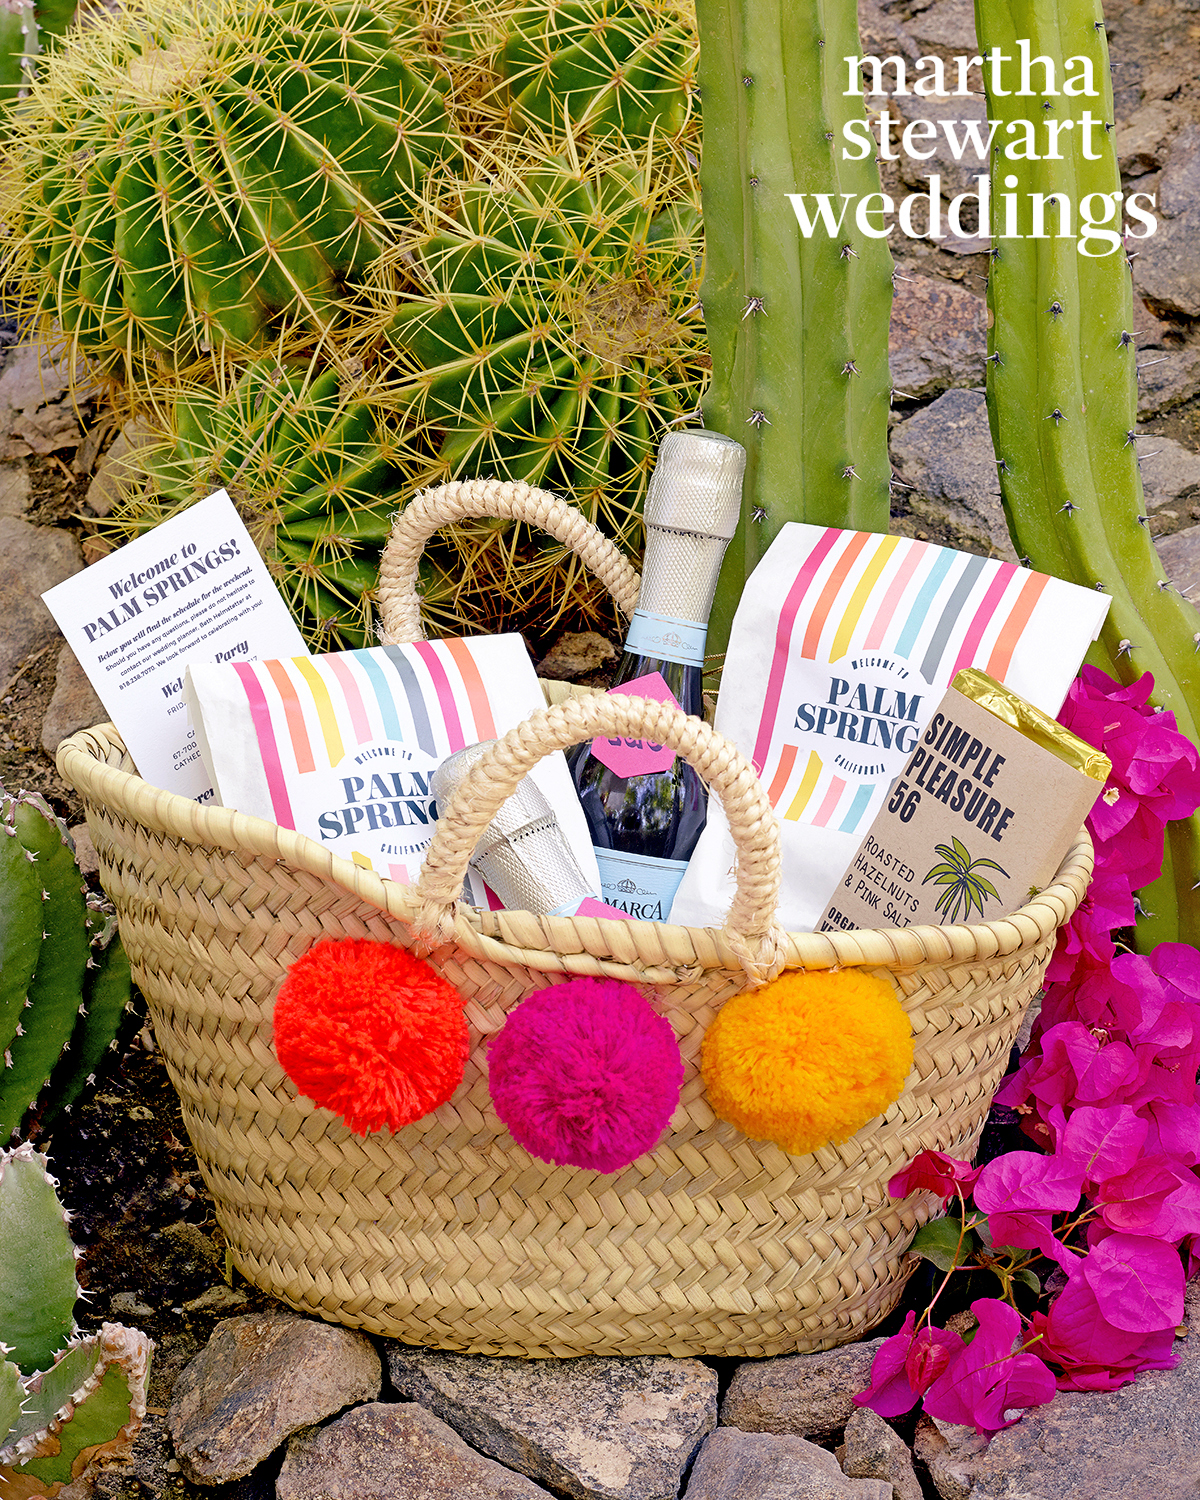 samira wiley lauren morelli wedding welcome bag